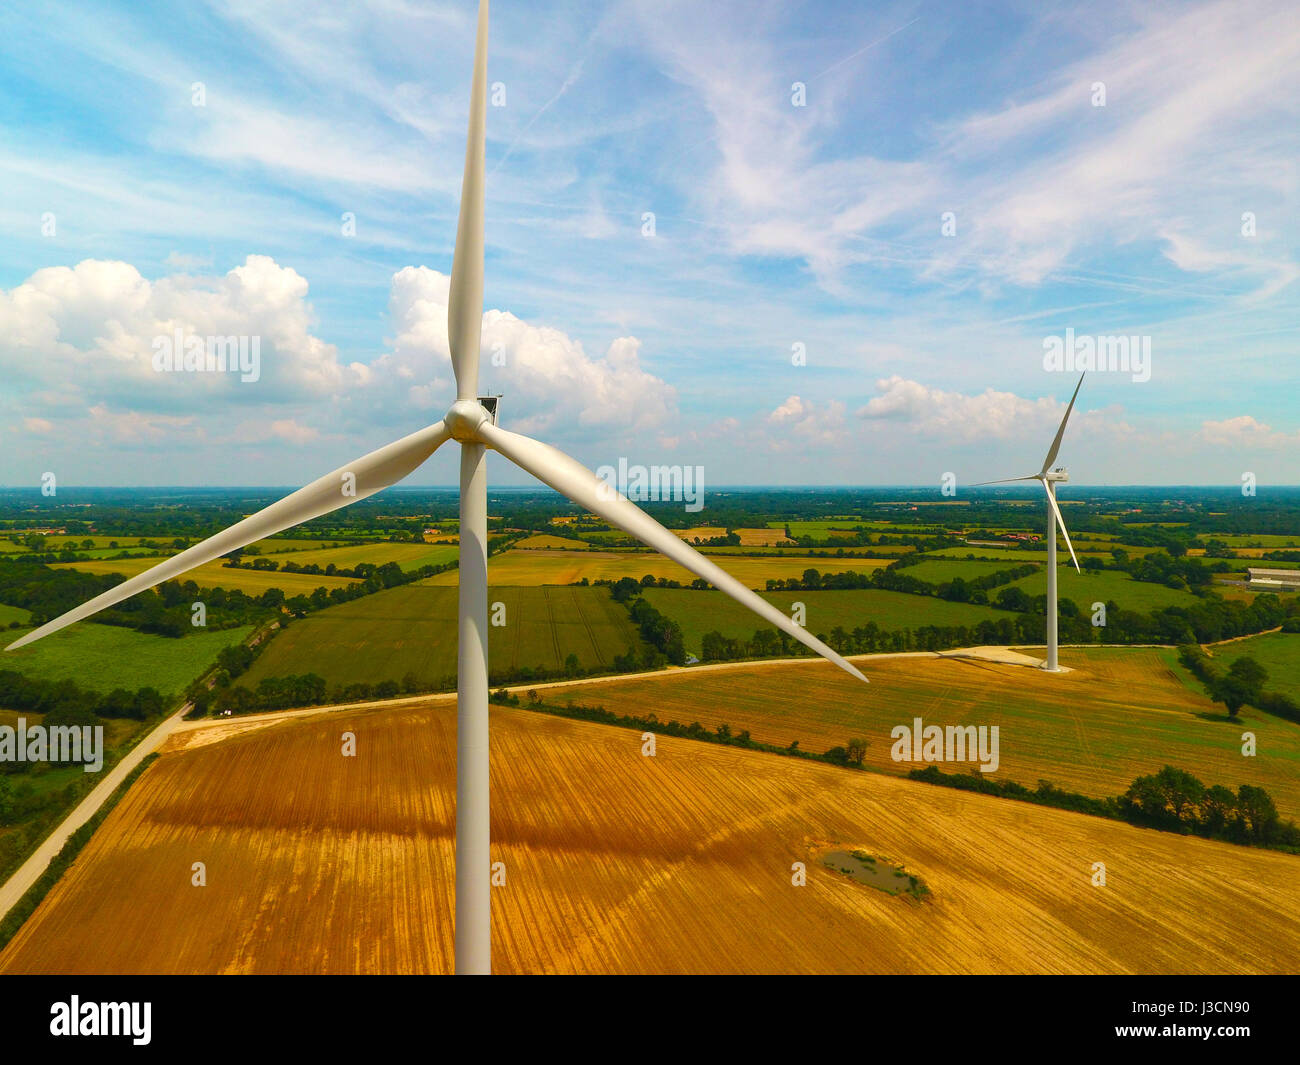 Drone photography of wind turbines in a field, near Sainte Pazanne, France - Stock Image